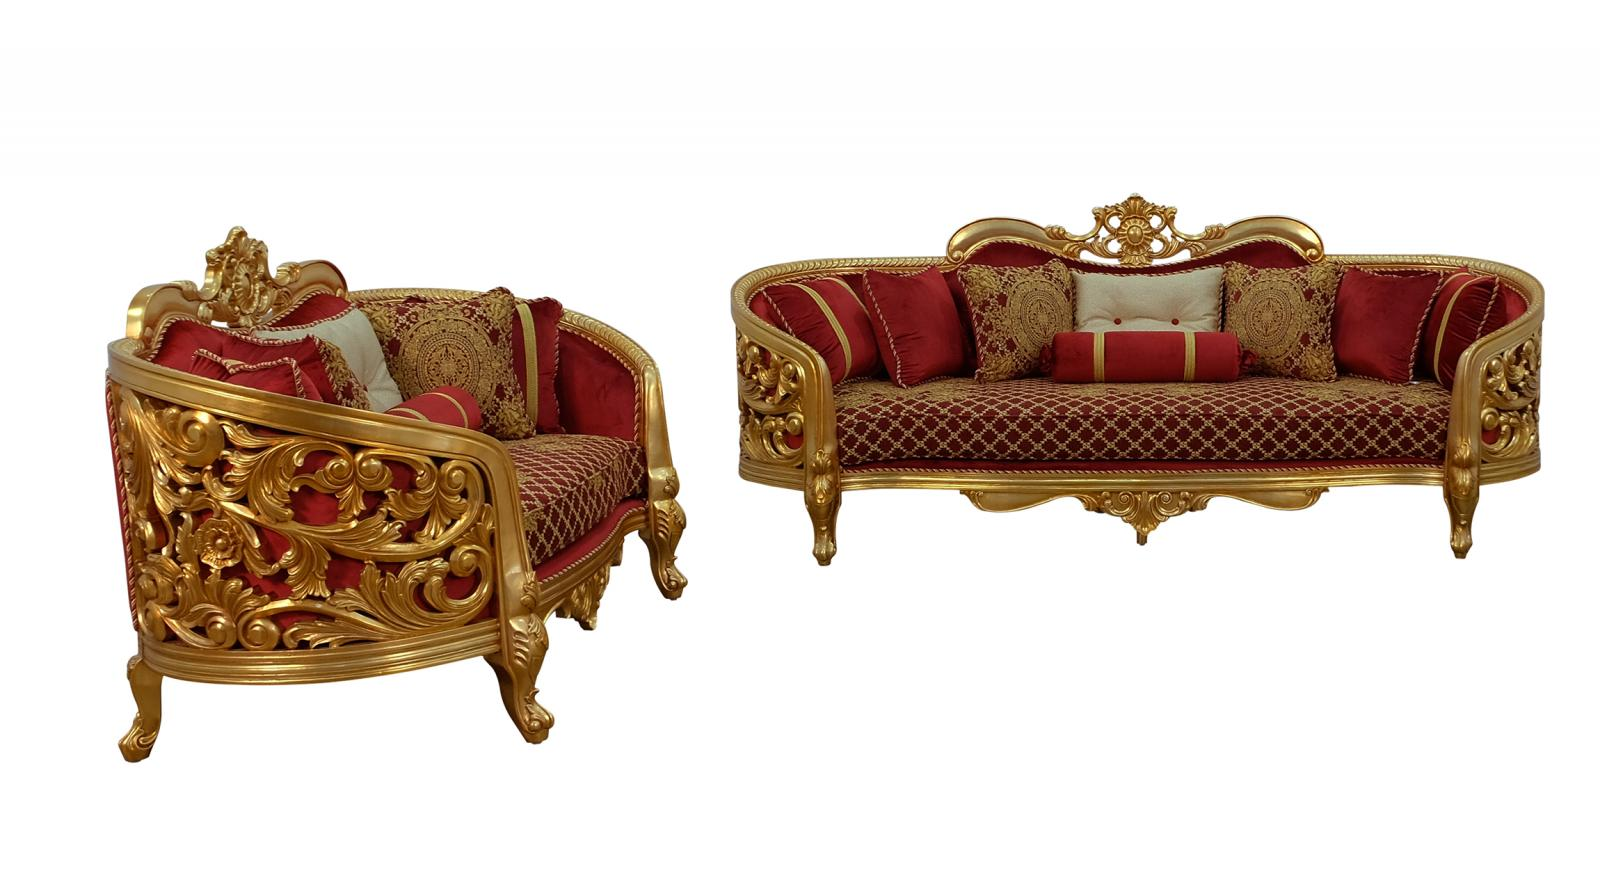 Classic  Traditional Gold  Antique   Red Wood  Solid Hardwood and Velvet Sofa Set EUROPEAN FURNITURE 30013-S-Set-2